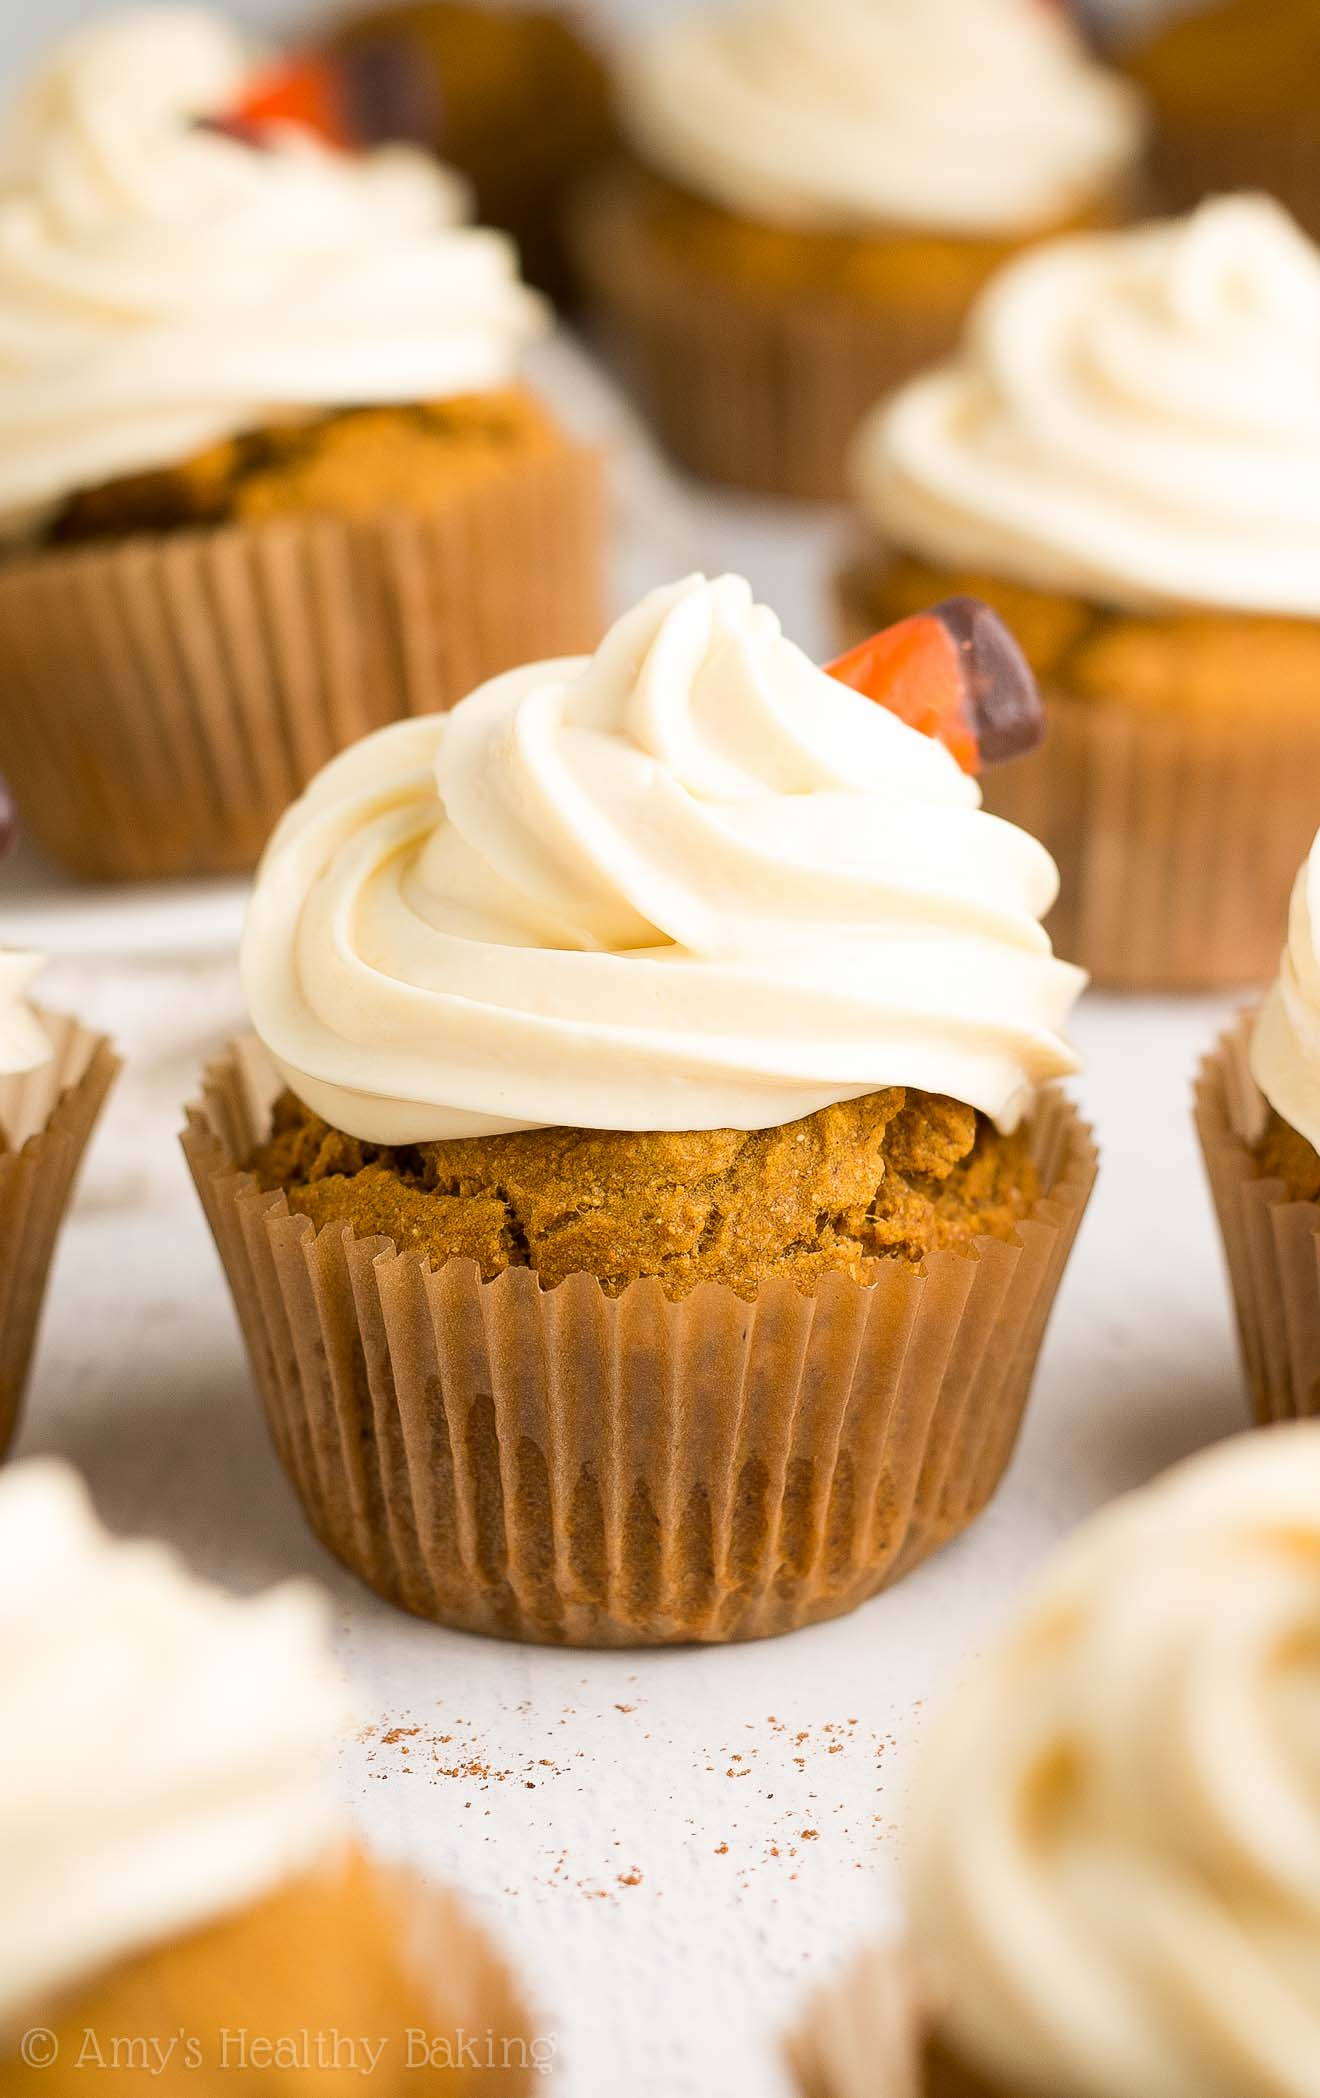 {HEALTHY!} Pumpkin Cupcakes -- only 123 calories, including the sweet cream cheese frosting! They taste AMAZING! Lots of cozy spices & sweet pumpkin flavor... And SO easy to make too! #recipe